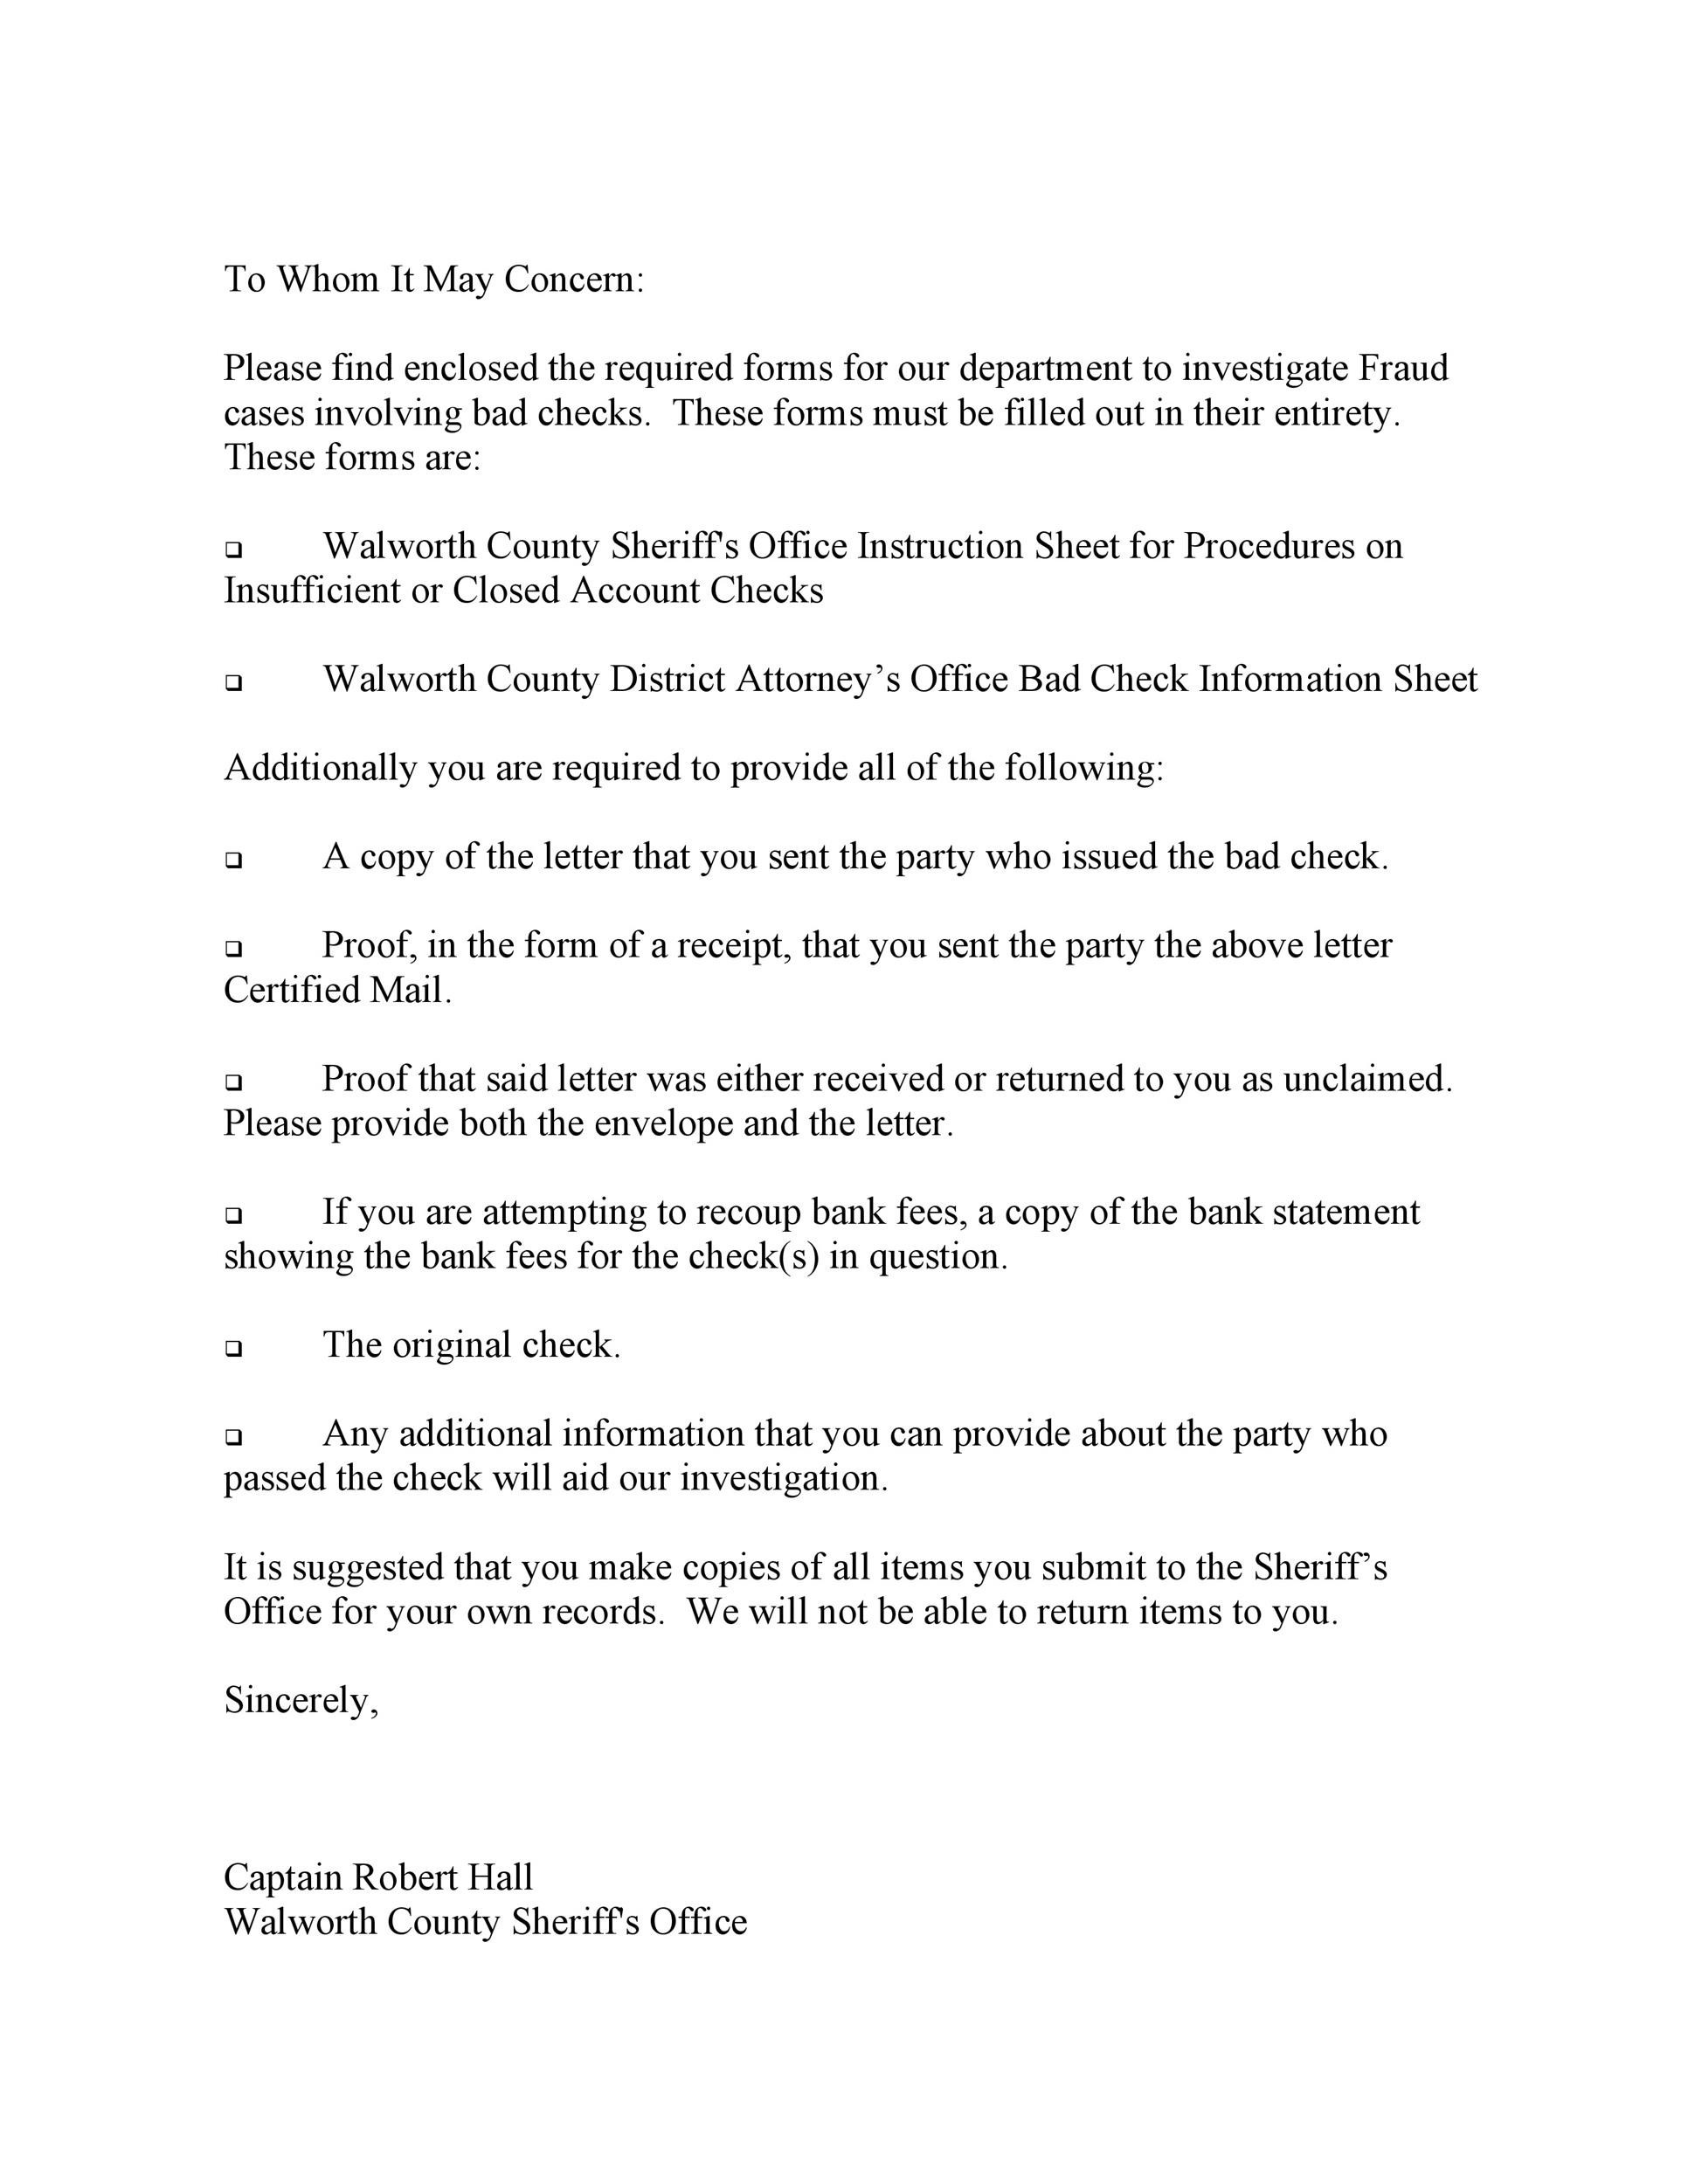 Free to whom it may concern letter 09